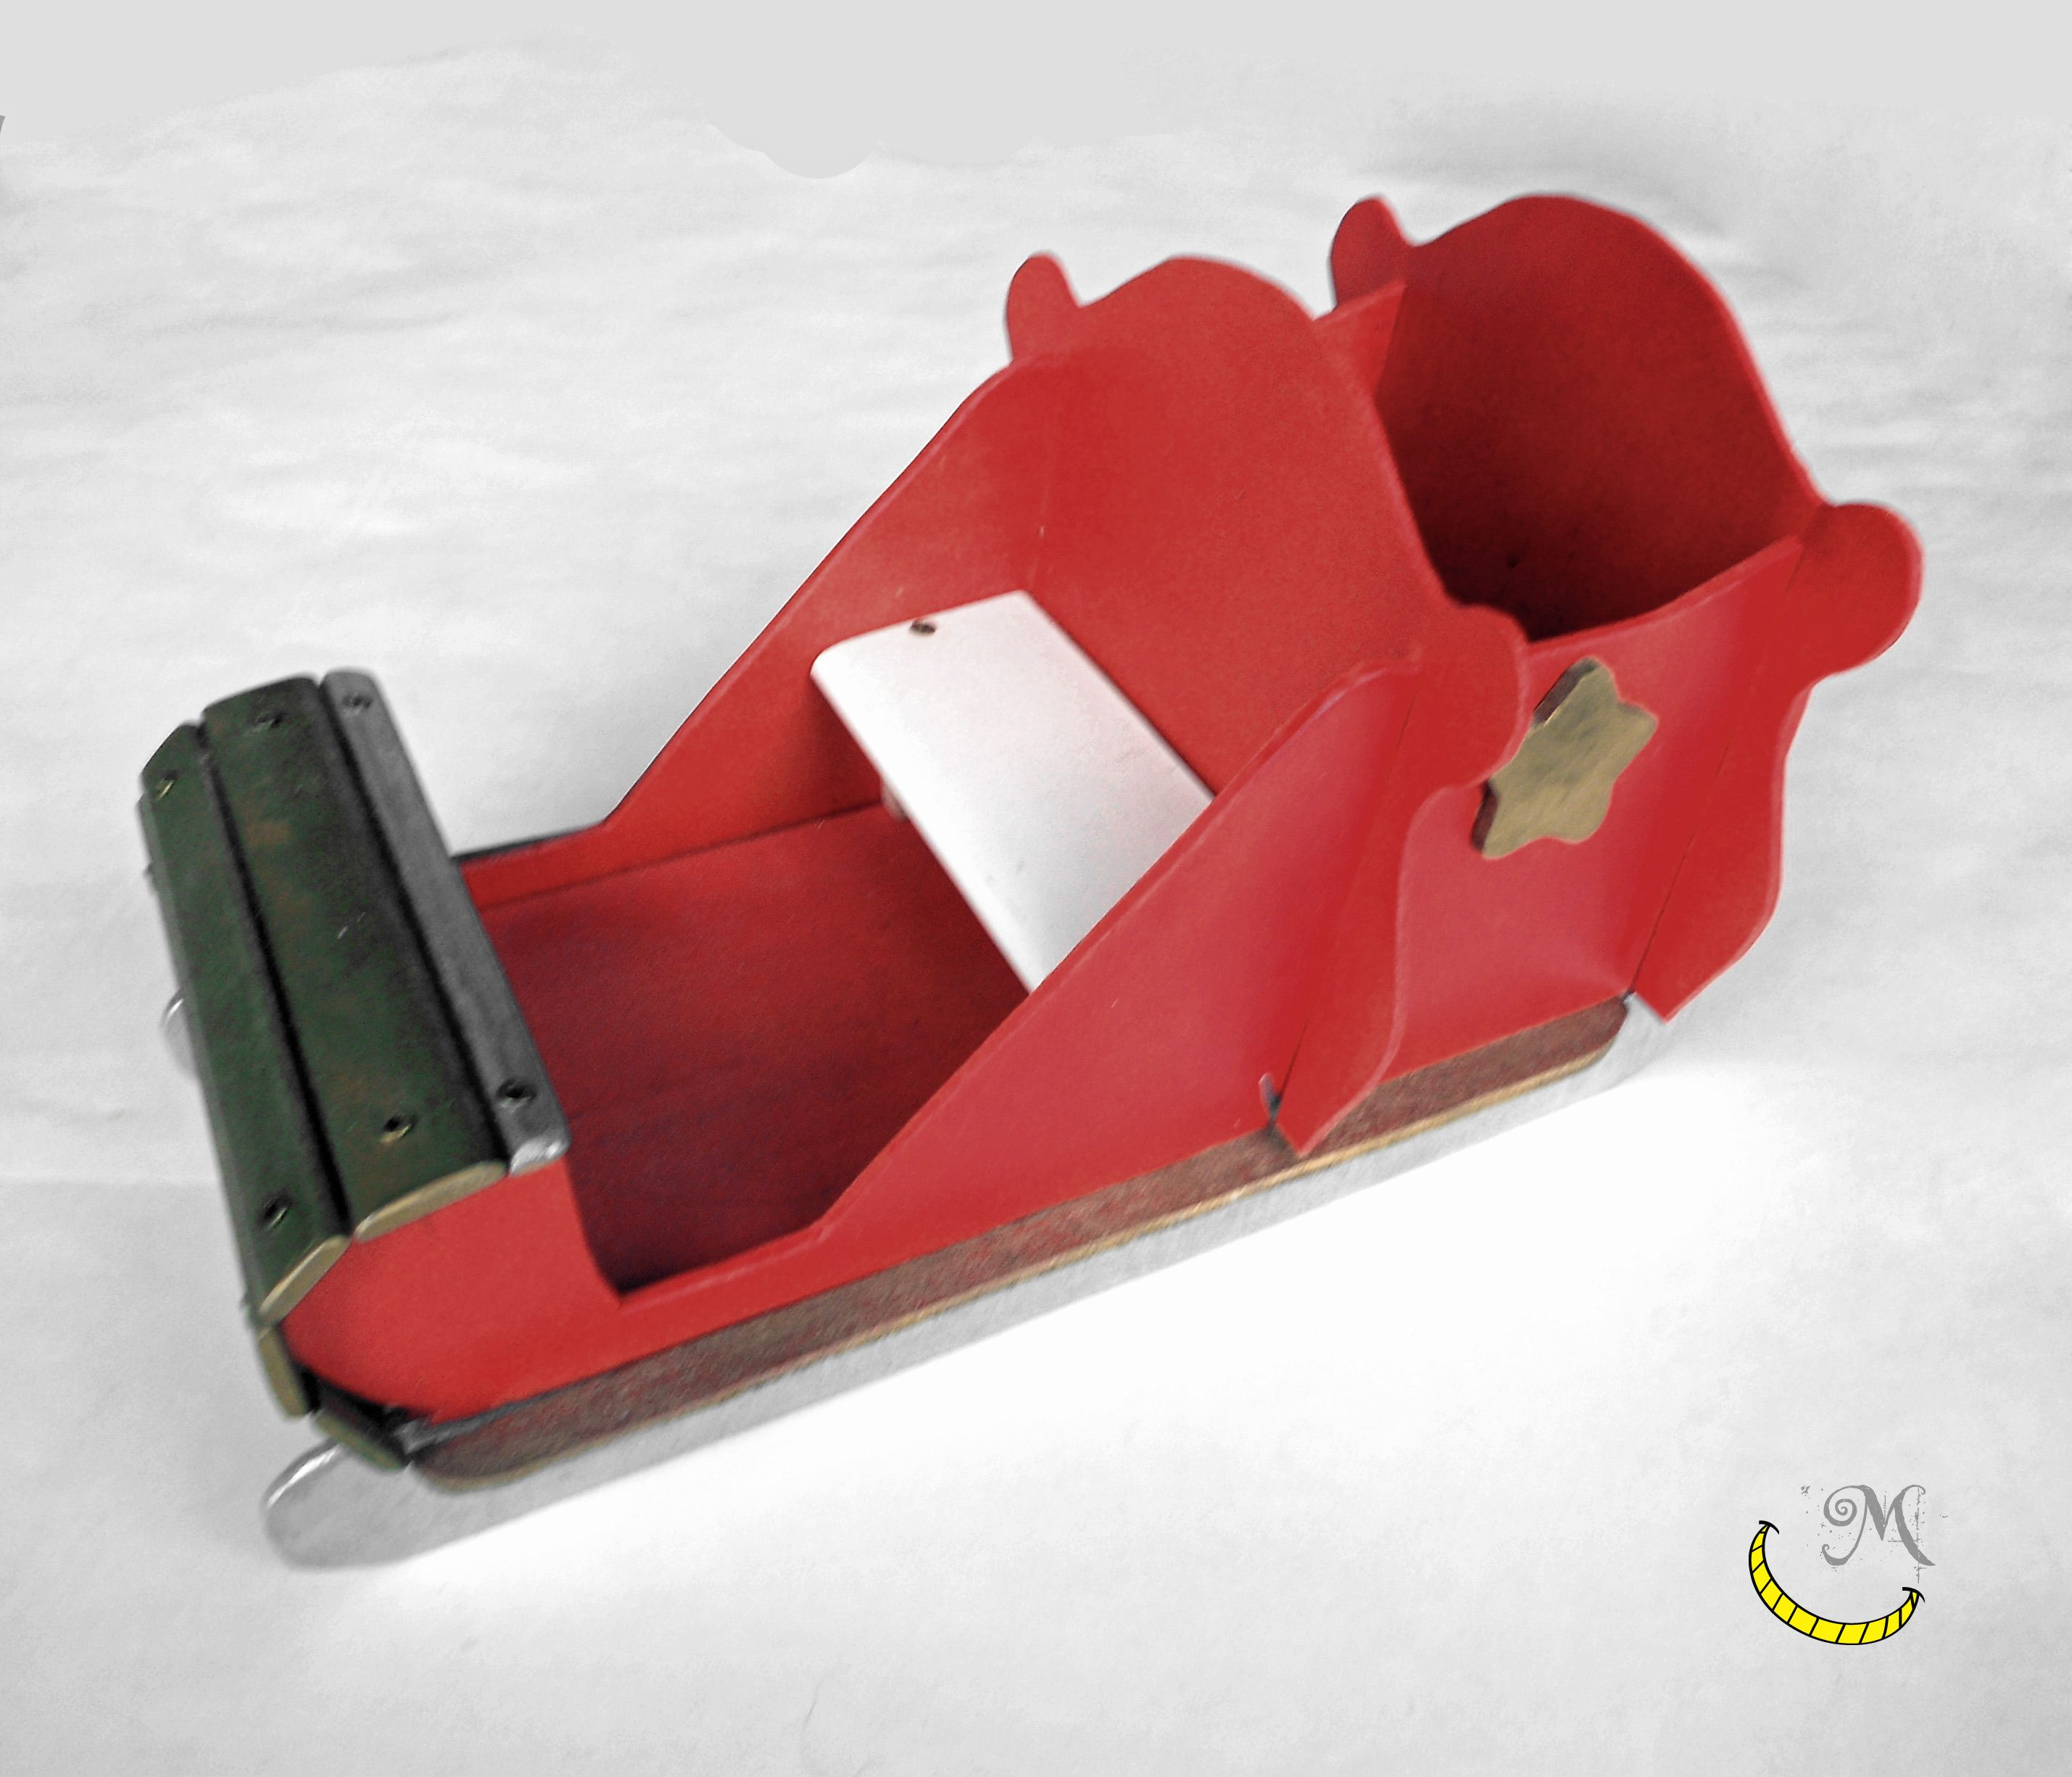 This sleigh of Santa Claus is entirely hand-built with recycled wood; to be filled with sweets and candies for the Christmas holidays. Hand painted. On sale here: http://it.dawanda.com/product/88890607-slitta-di-babbo-natale-in-legno-riciclato Sleigh Santa Claus recycled wood Christmas holidays Malice craftland ecofriendly Upcycled creative italian handicraft diy Follow me on fb: https://www.facebook.com/MaliceCrafts